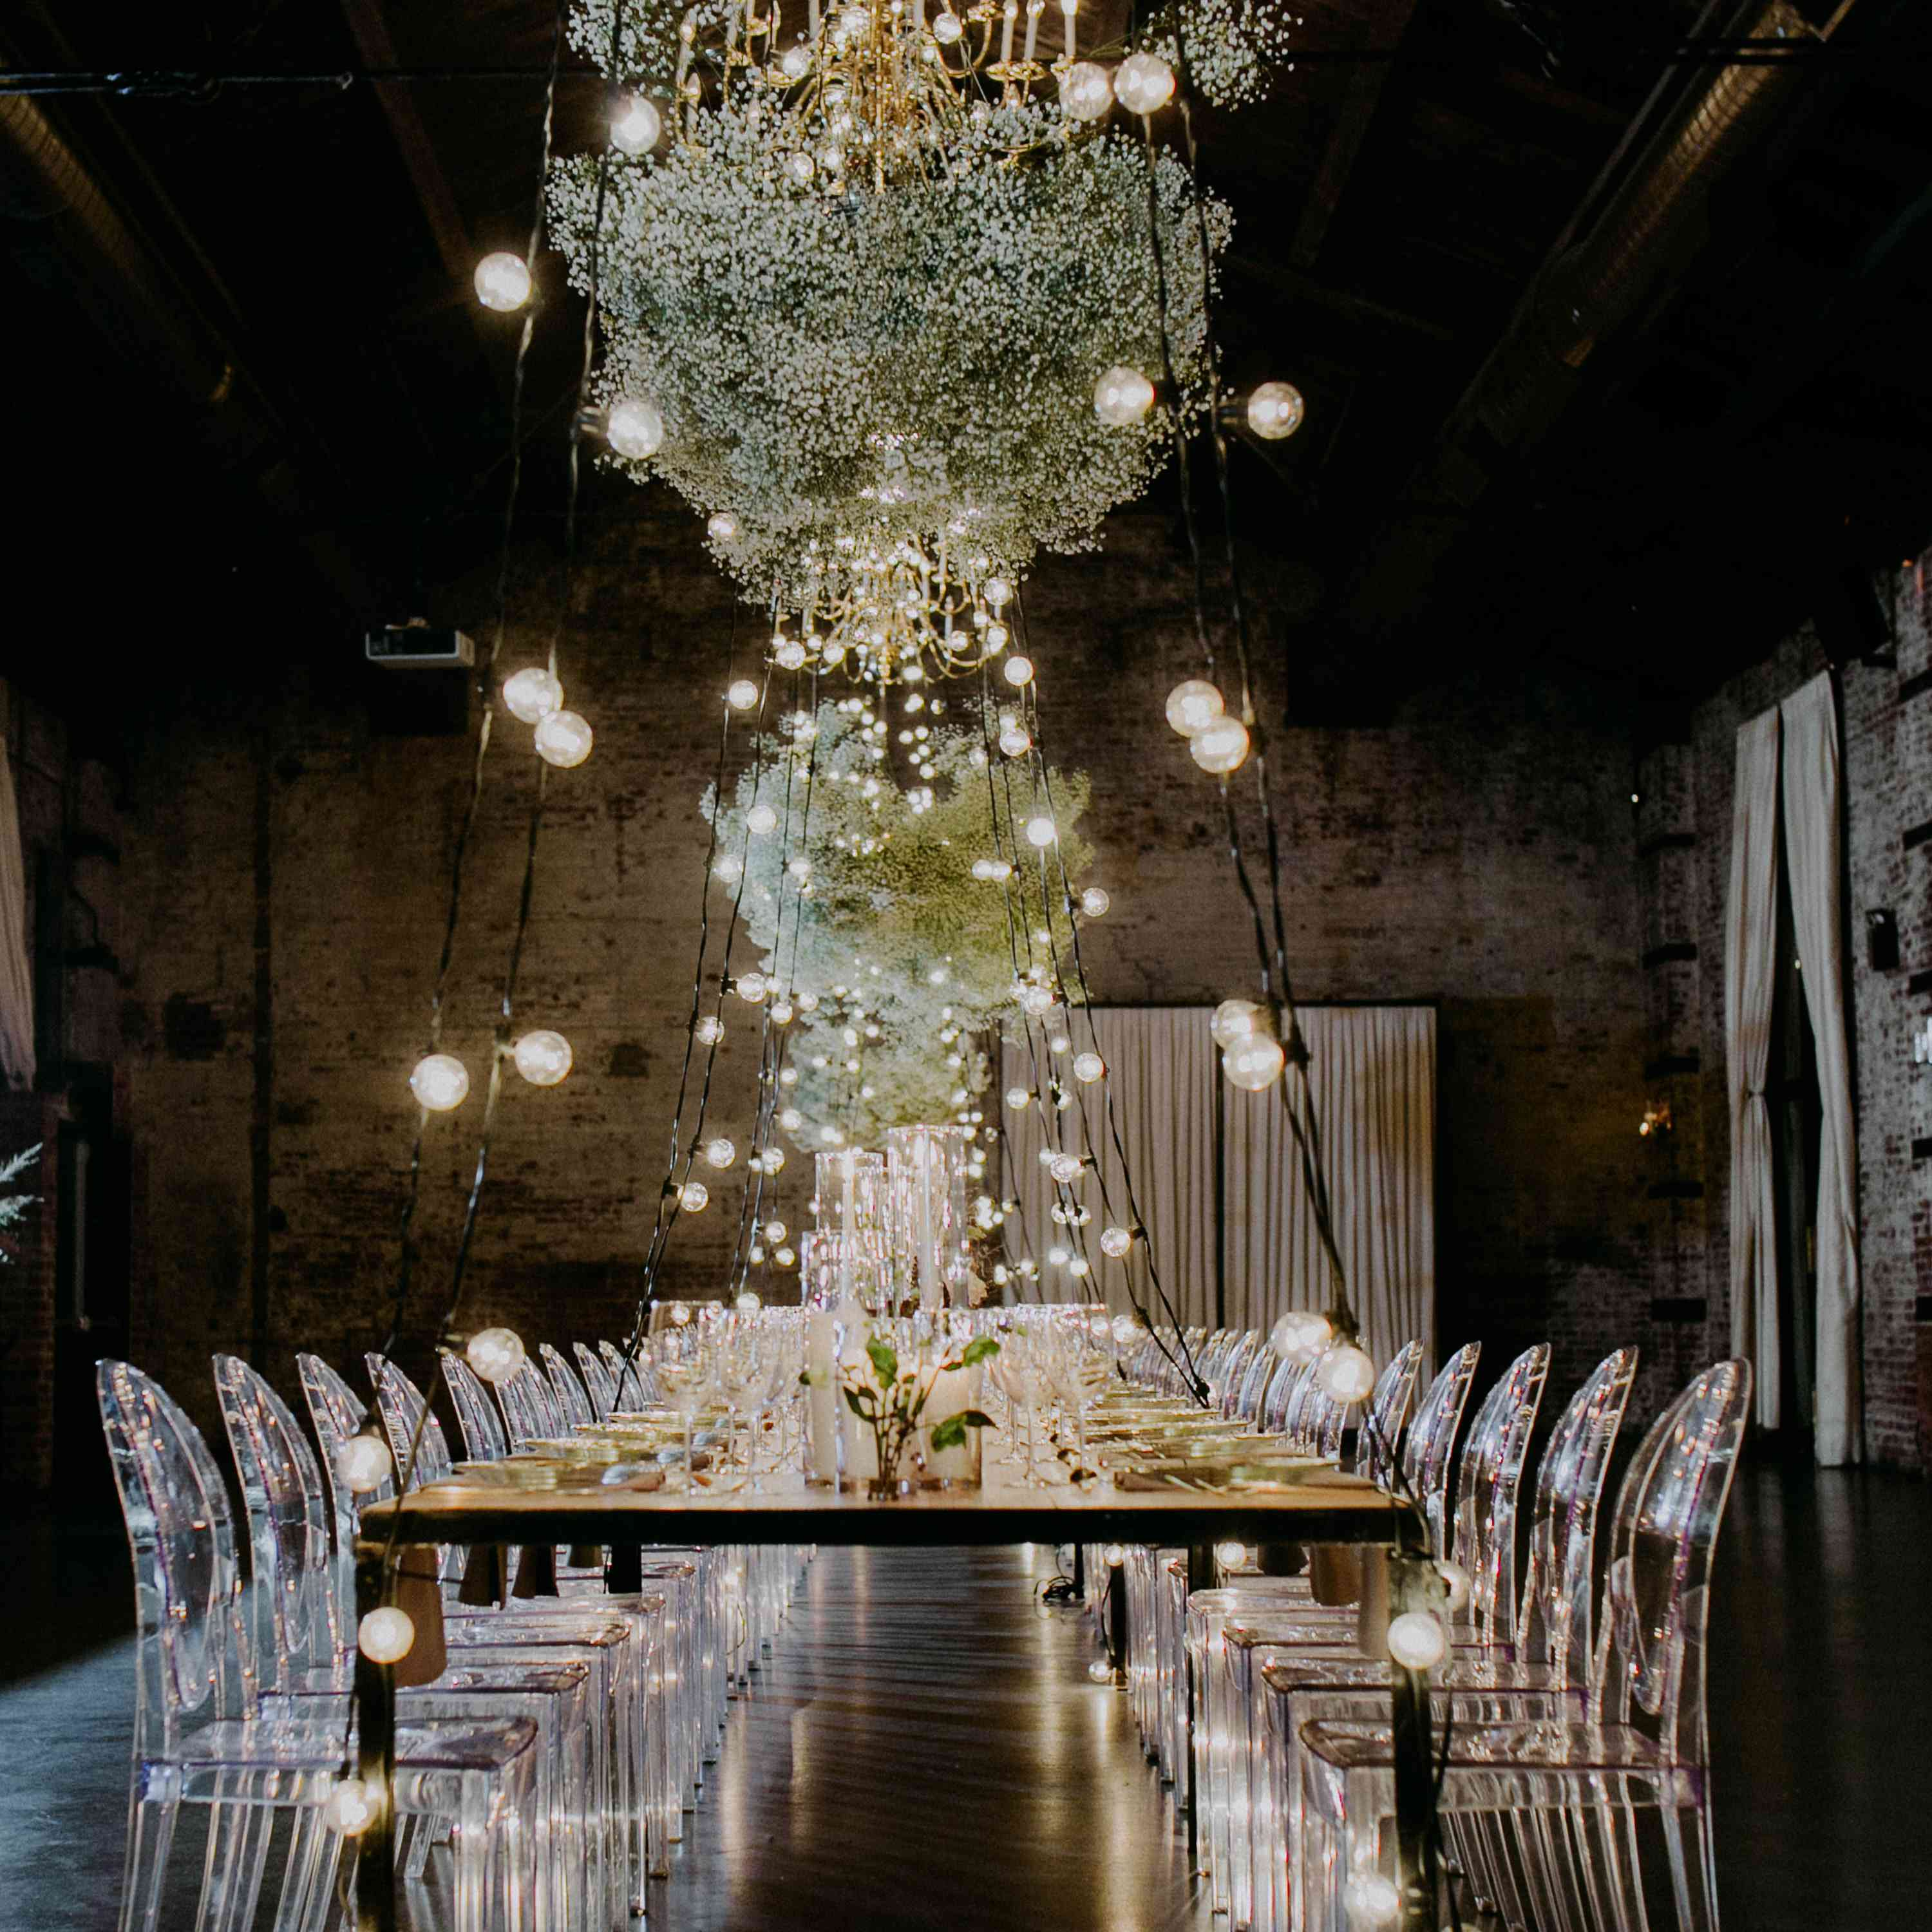 Venue Decorations: 30 Small Wedding Ideas For An Intimate Affair